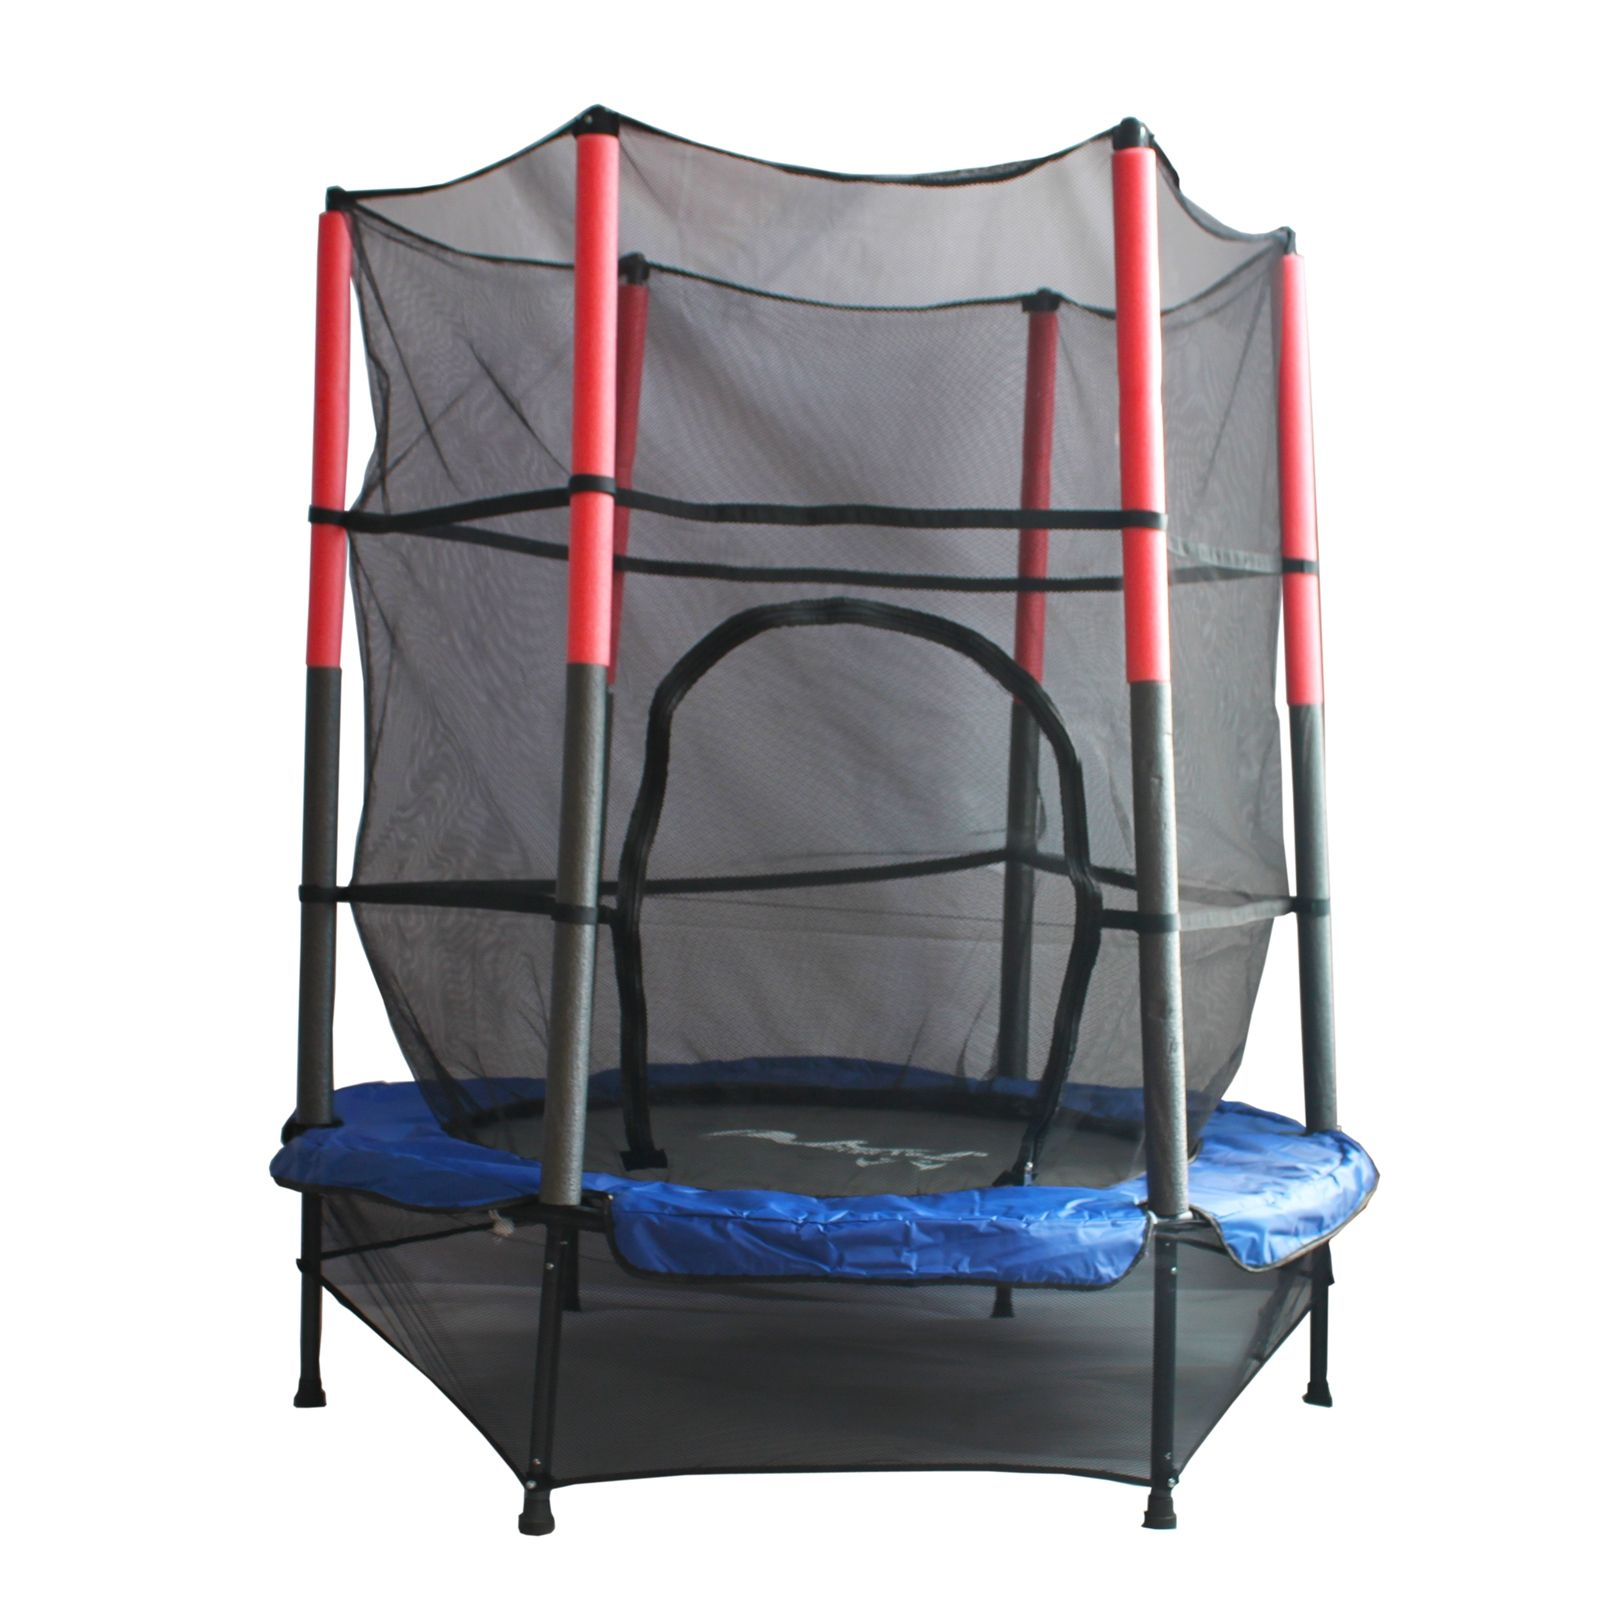 FoxHunter Junior Trampoline With Enclosure Safety Net Kids Activity 4 5FT 55 034